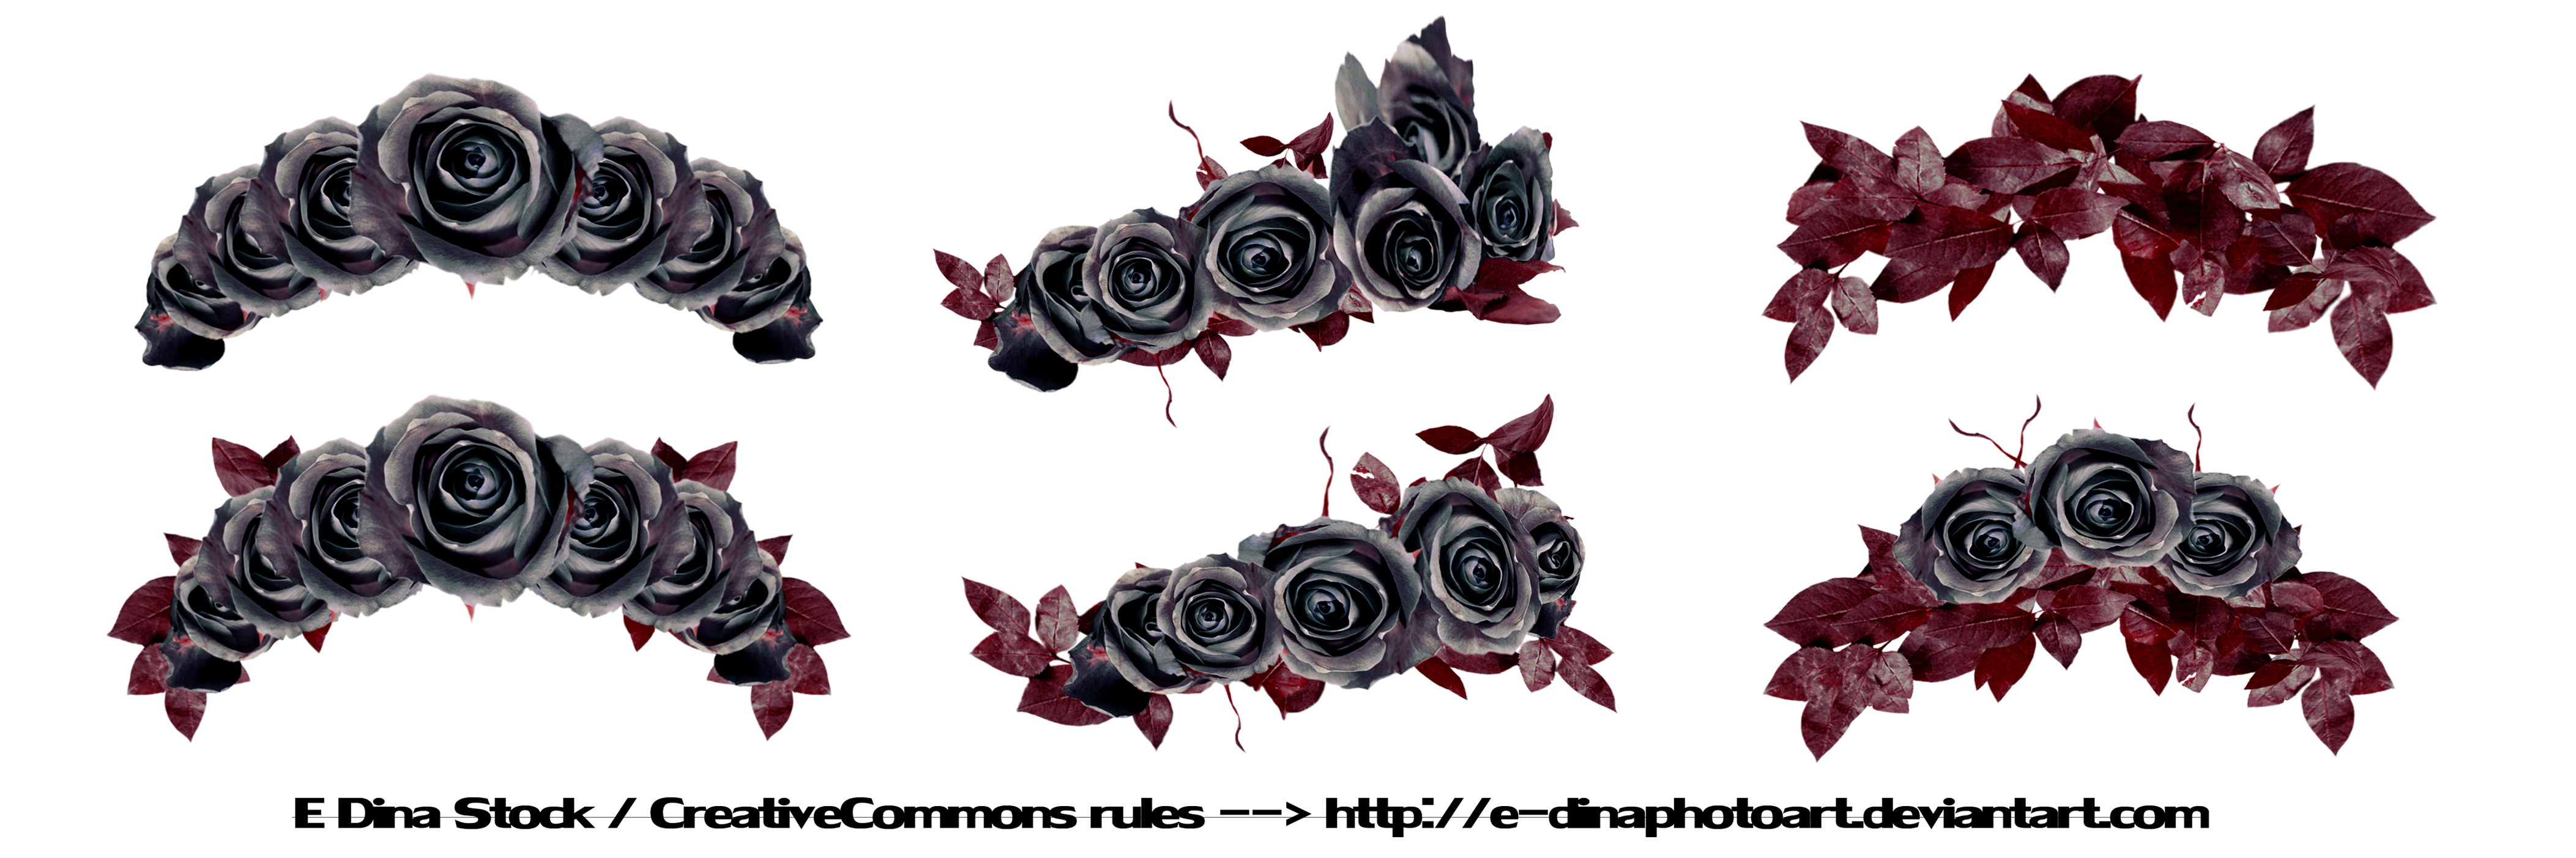 Png Stock Floralwreath Dark Roses By E Dinaphotoart On Deviantart